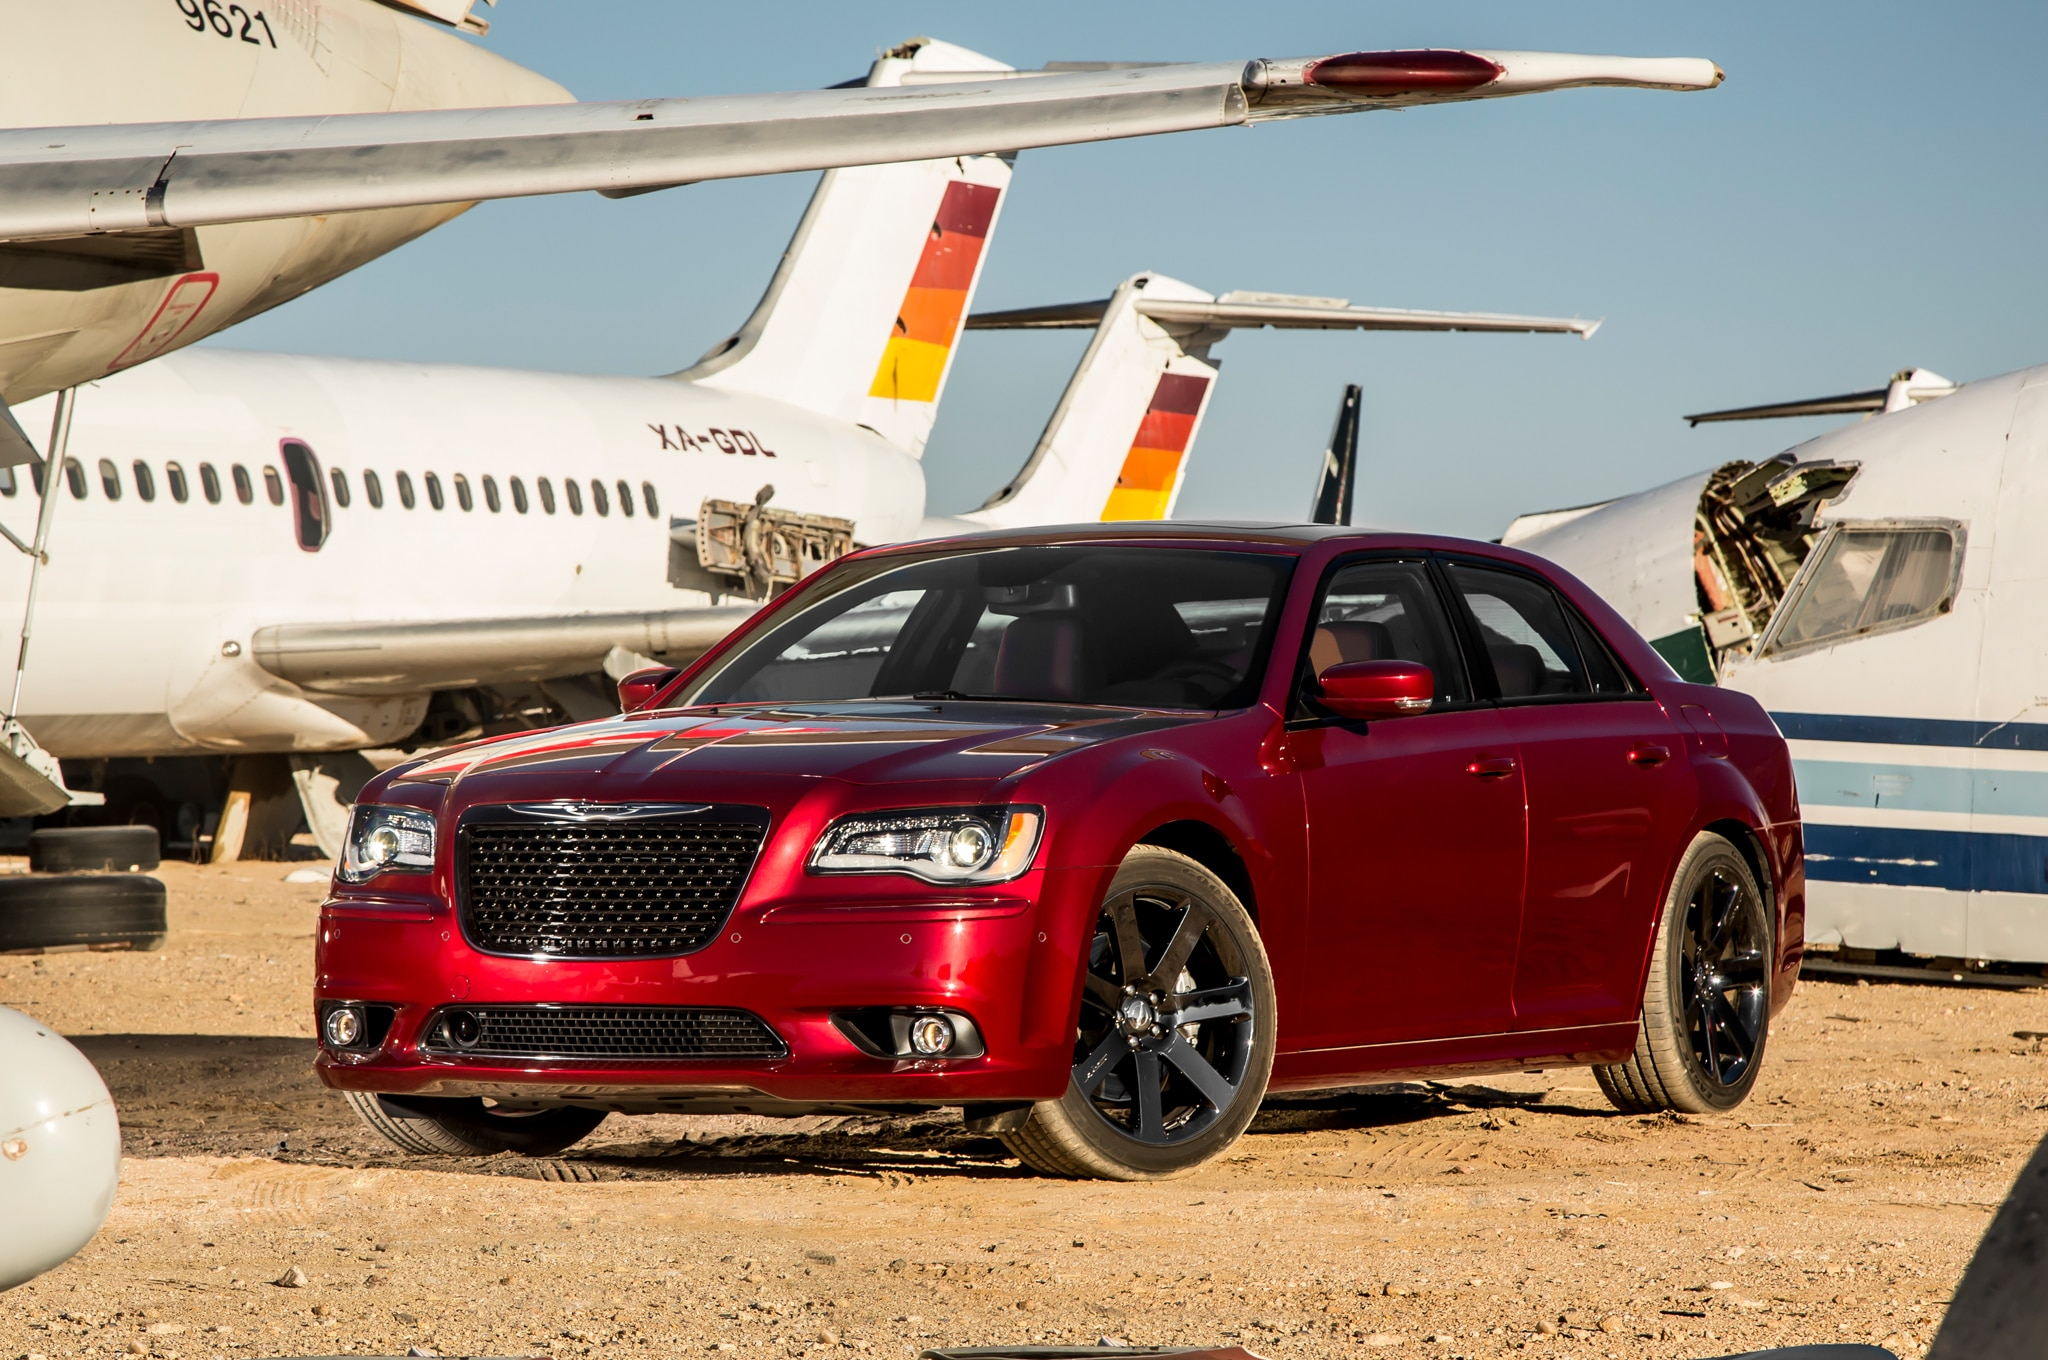 2014 Srt Chrysler 300 >> What Will Fiat and Chrysler Be in 2019? - Automobile Magazine